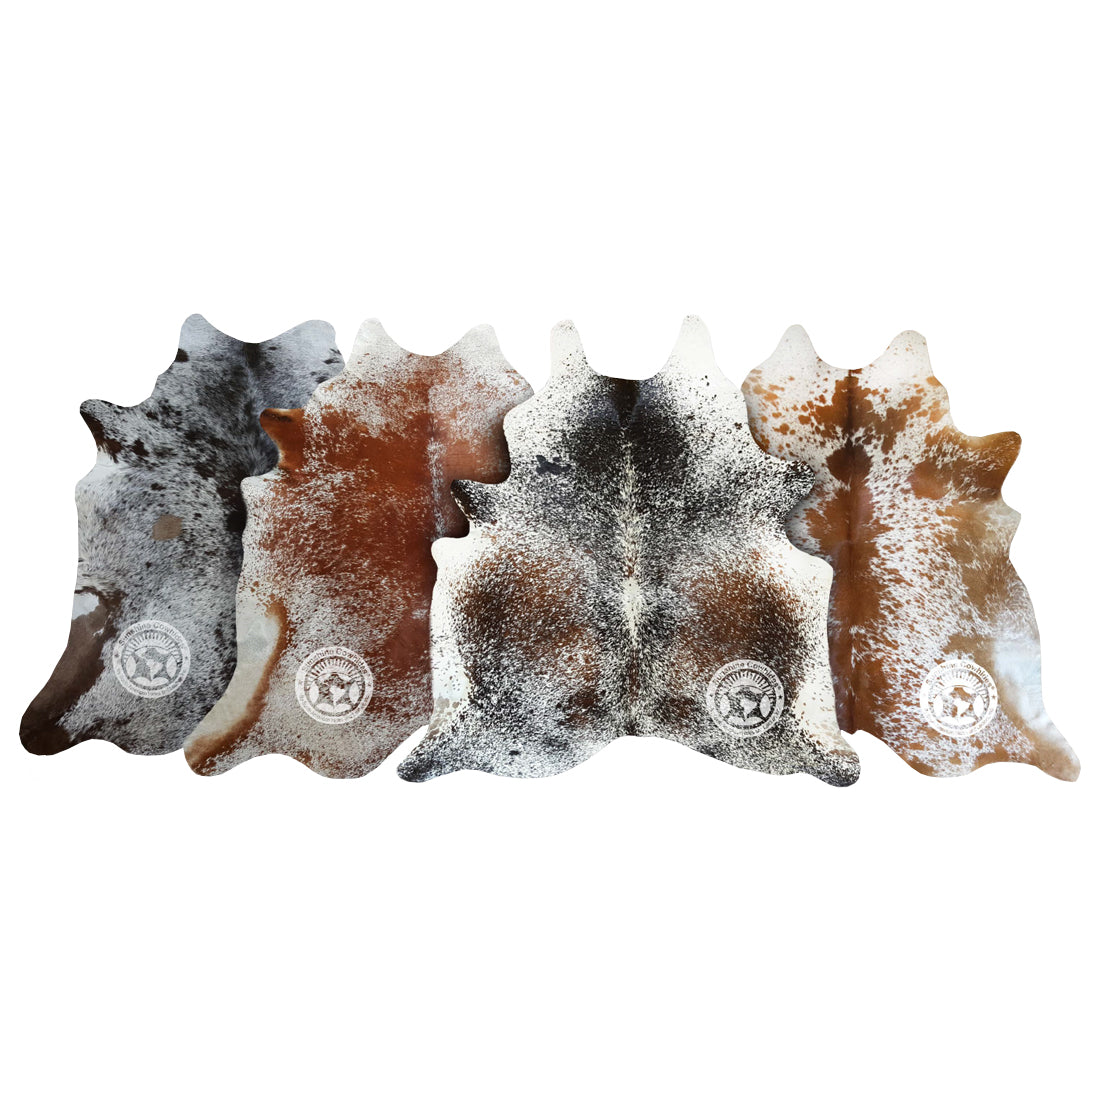 Natural Cowhide Rug - Salt & Pepper Mix